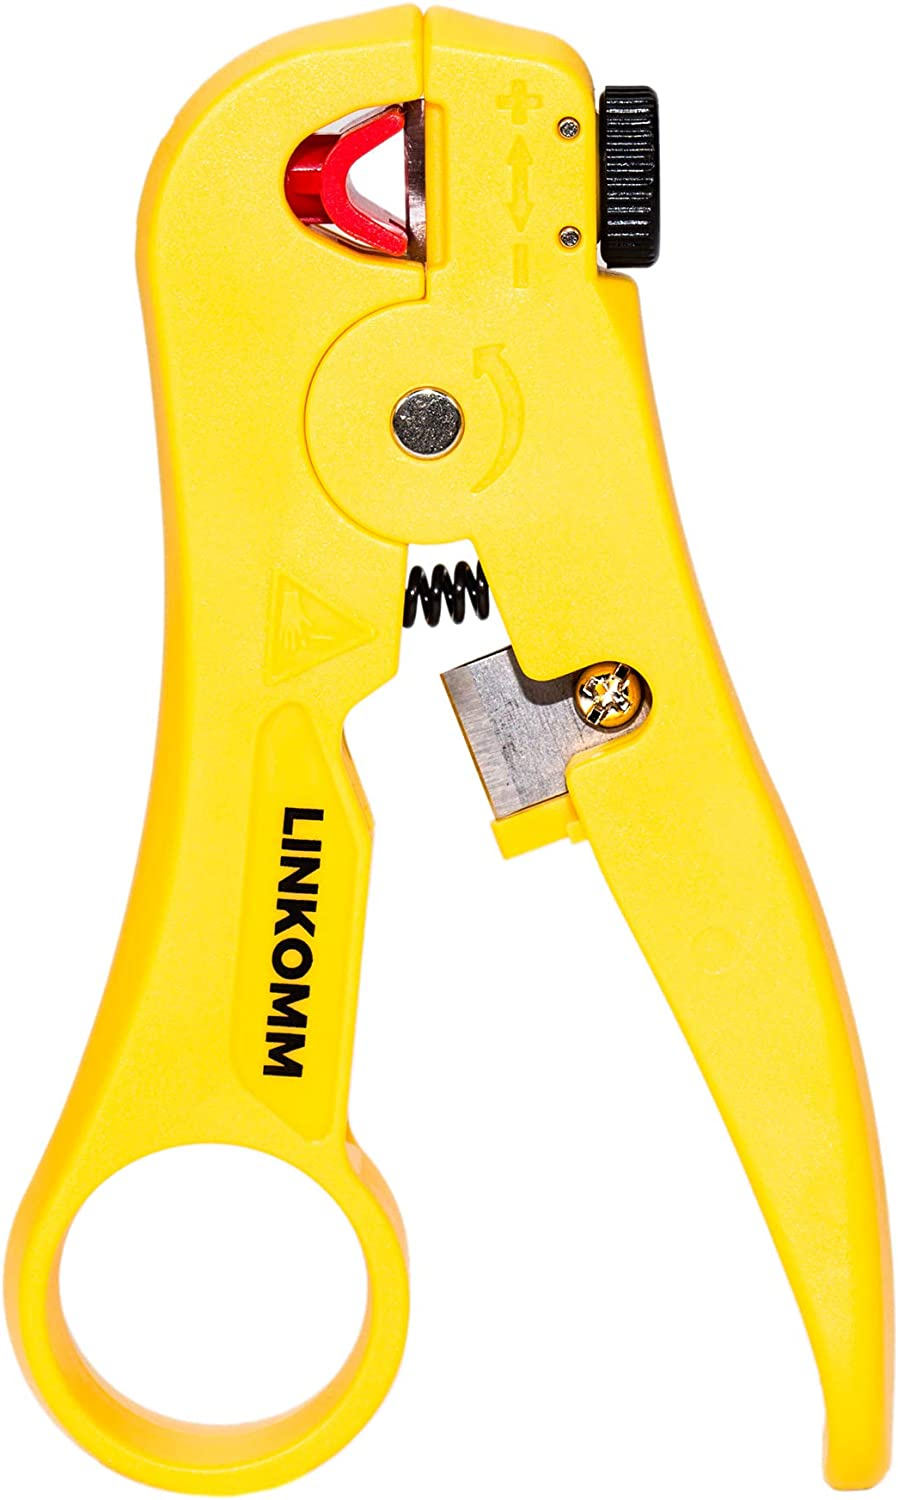 Network Cable Stripper Wire Cutter Rotary Stripping Hand Tool for Round Cables